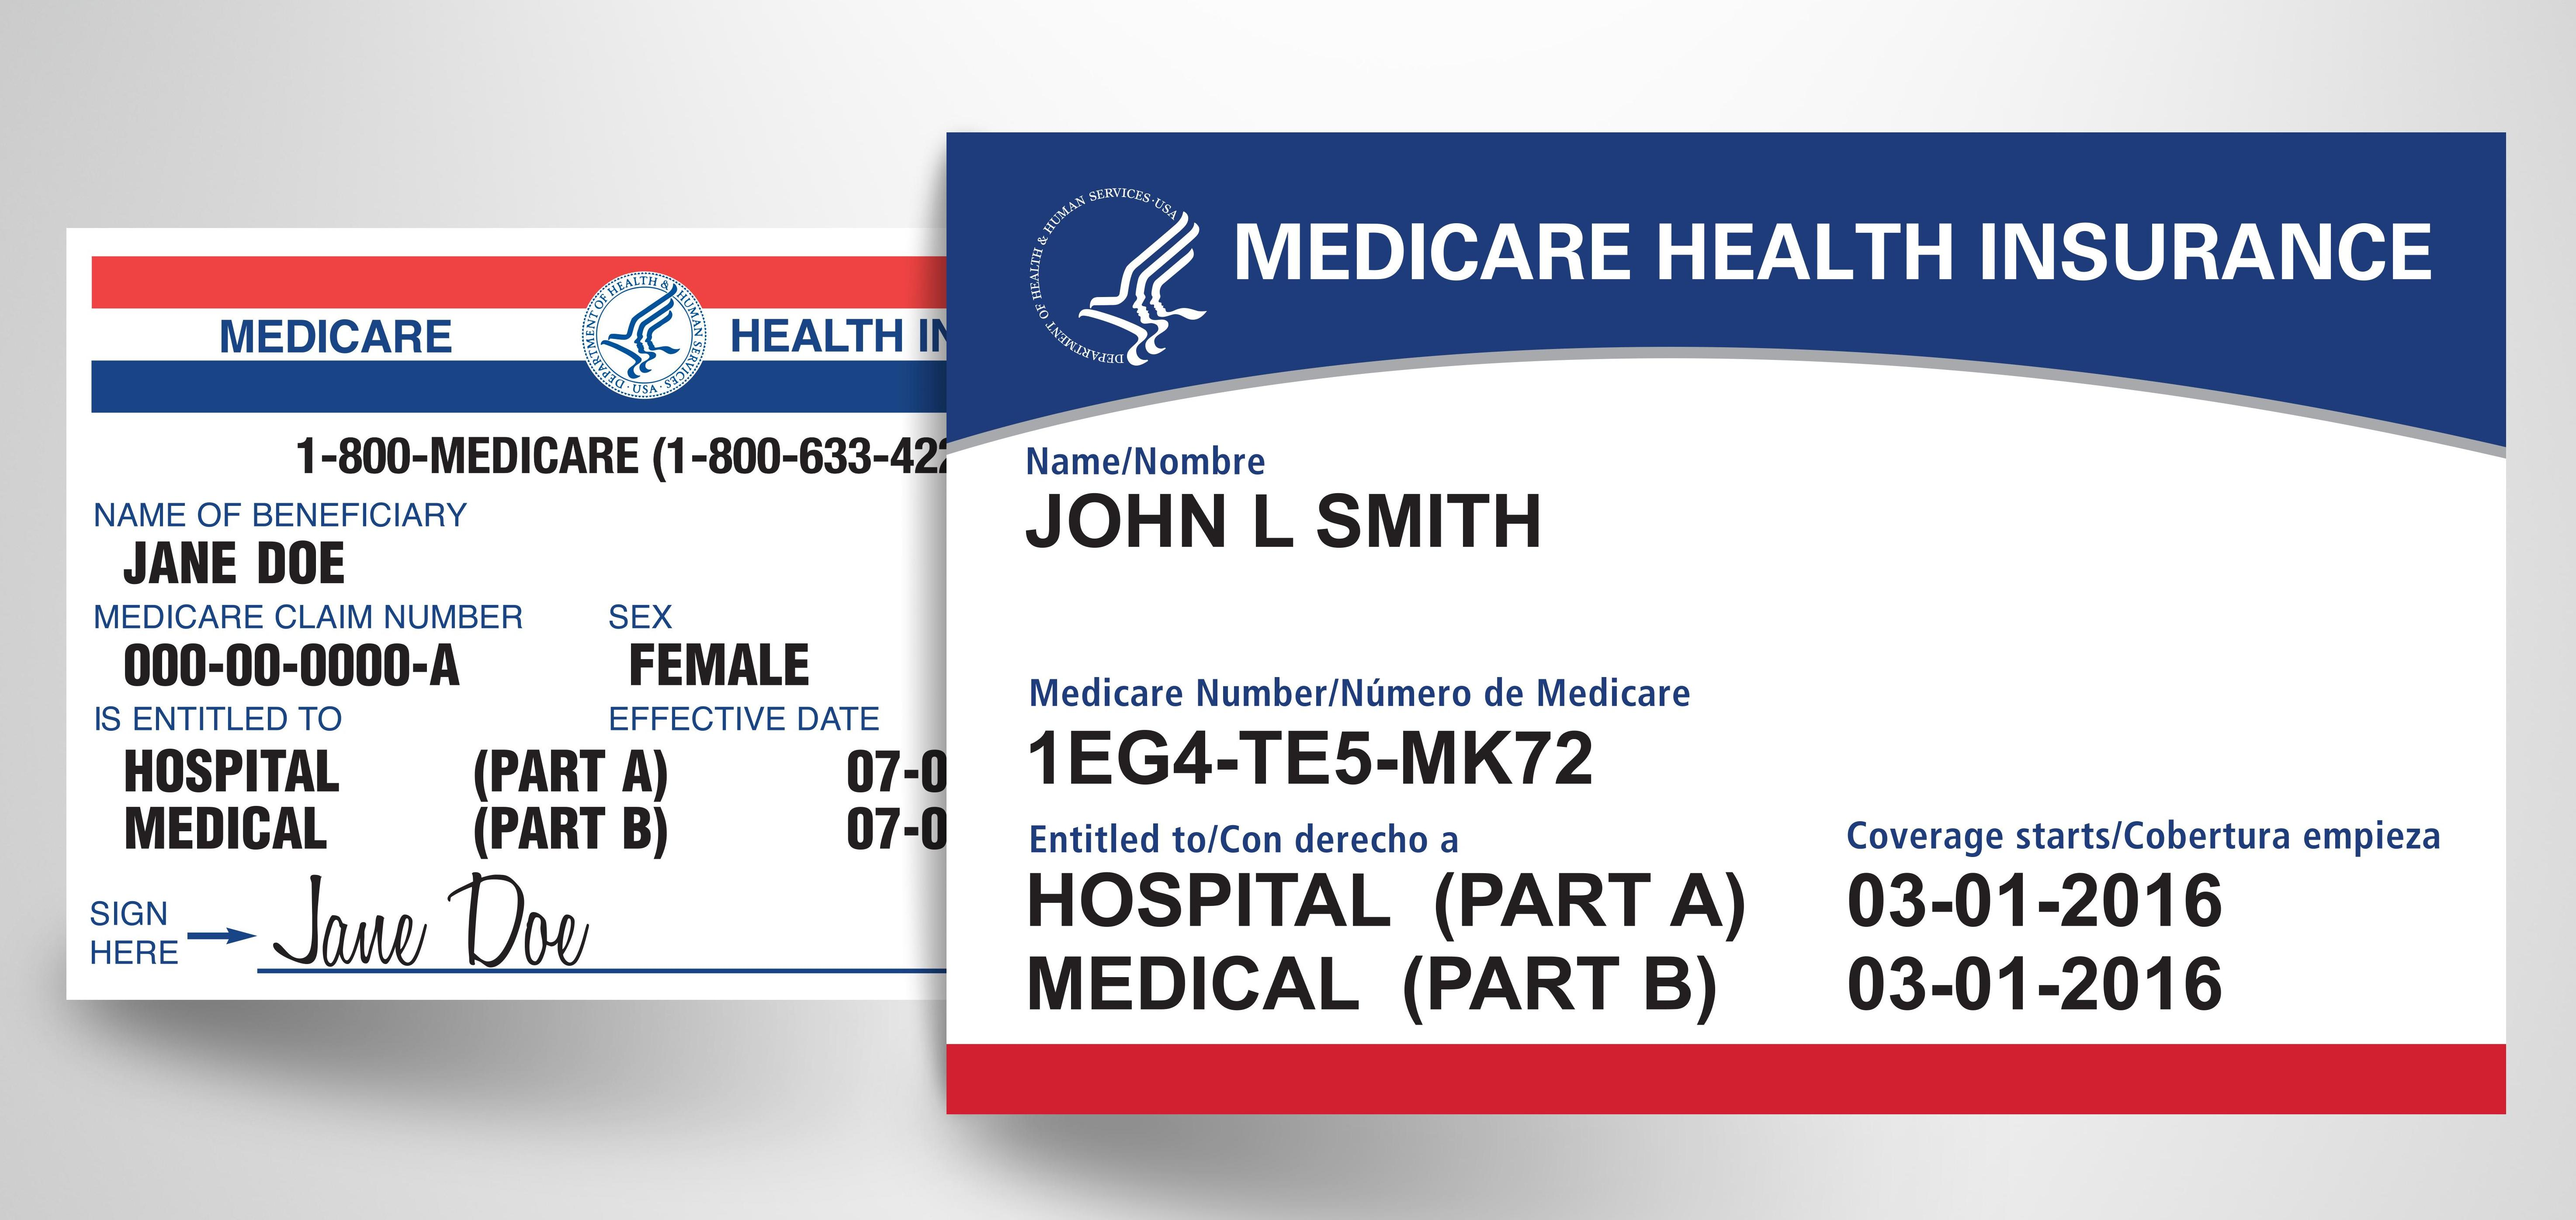 - Management Solution Are Cards New Allzone Medicare Coming